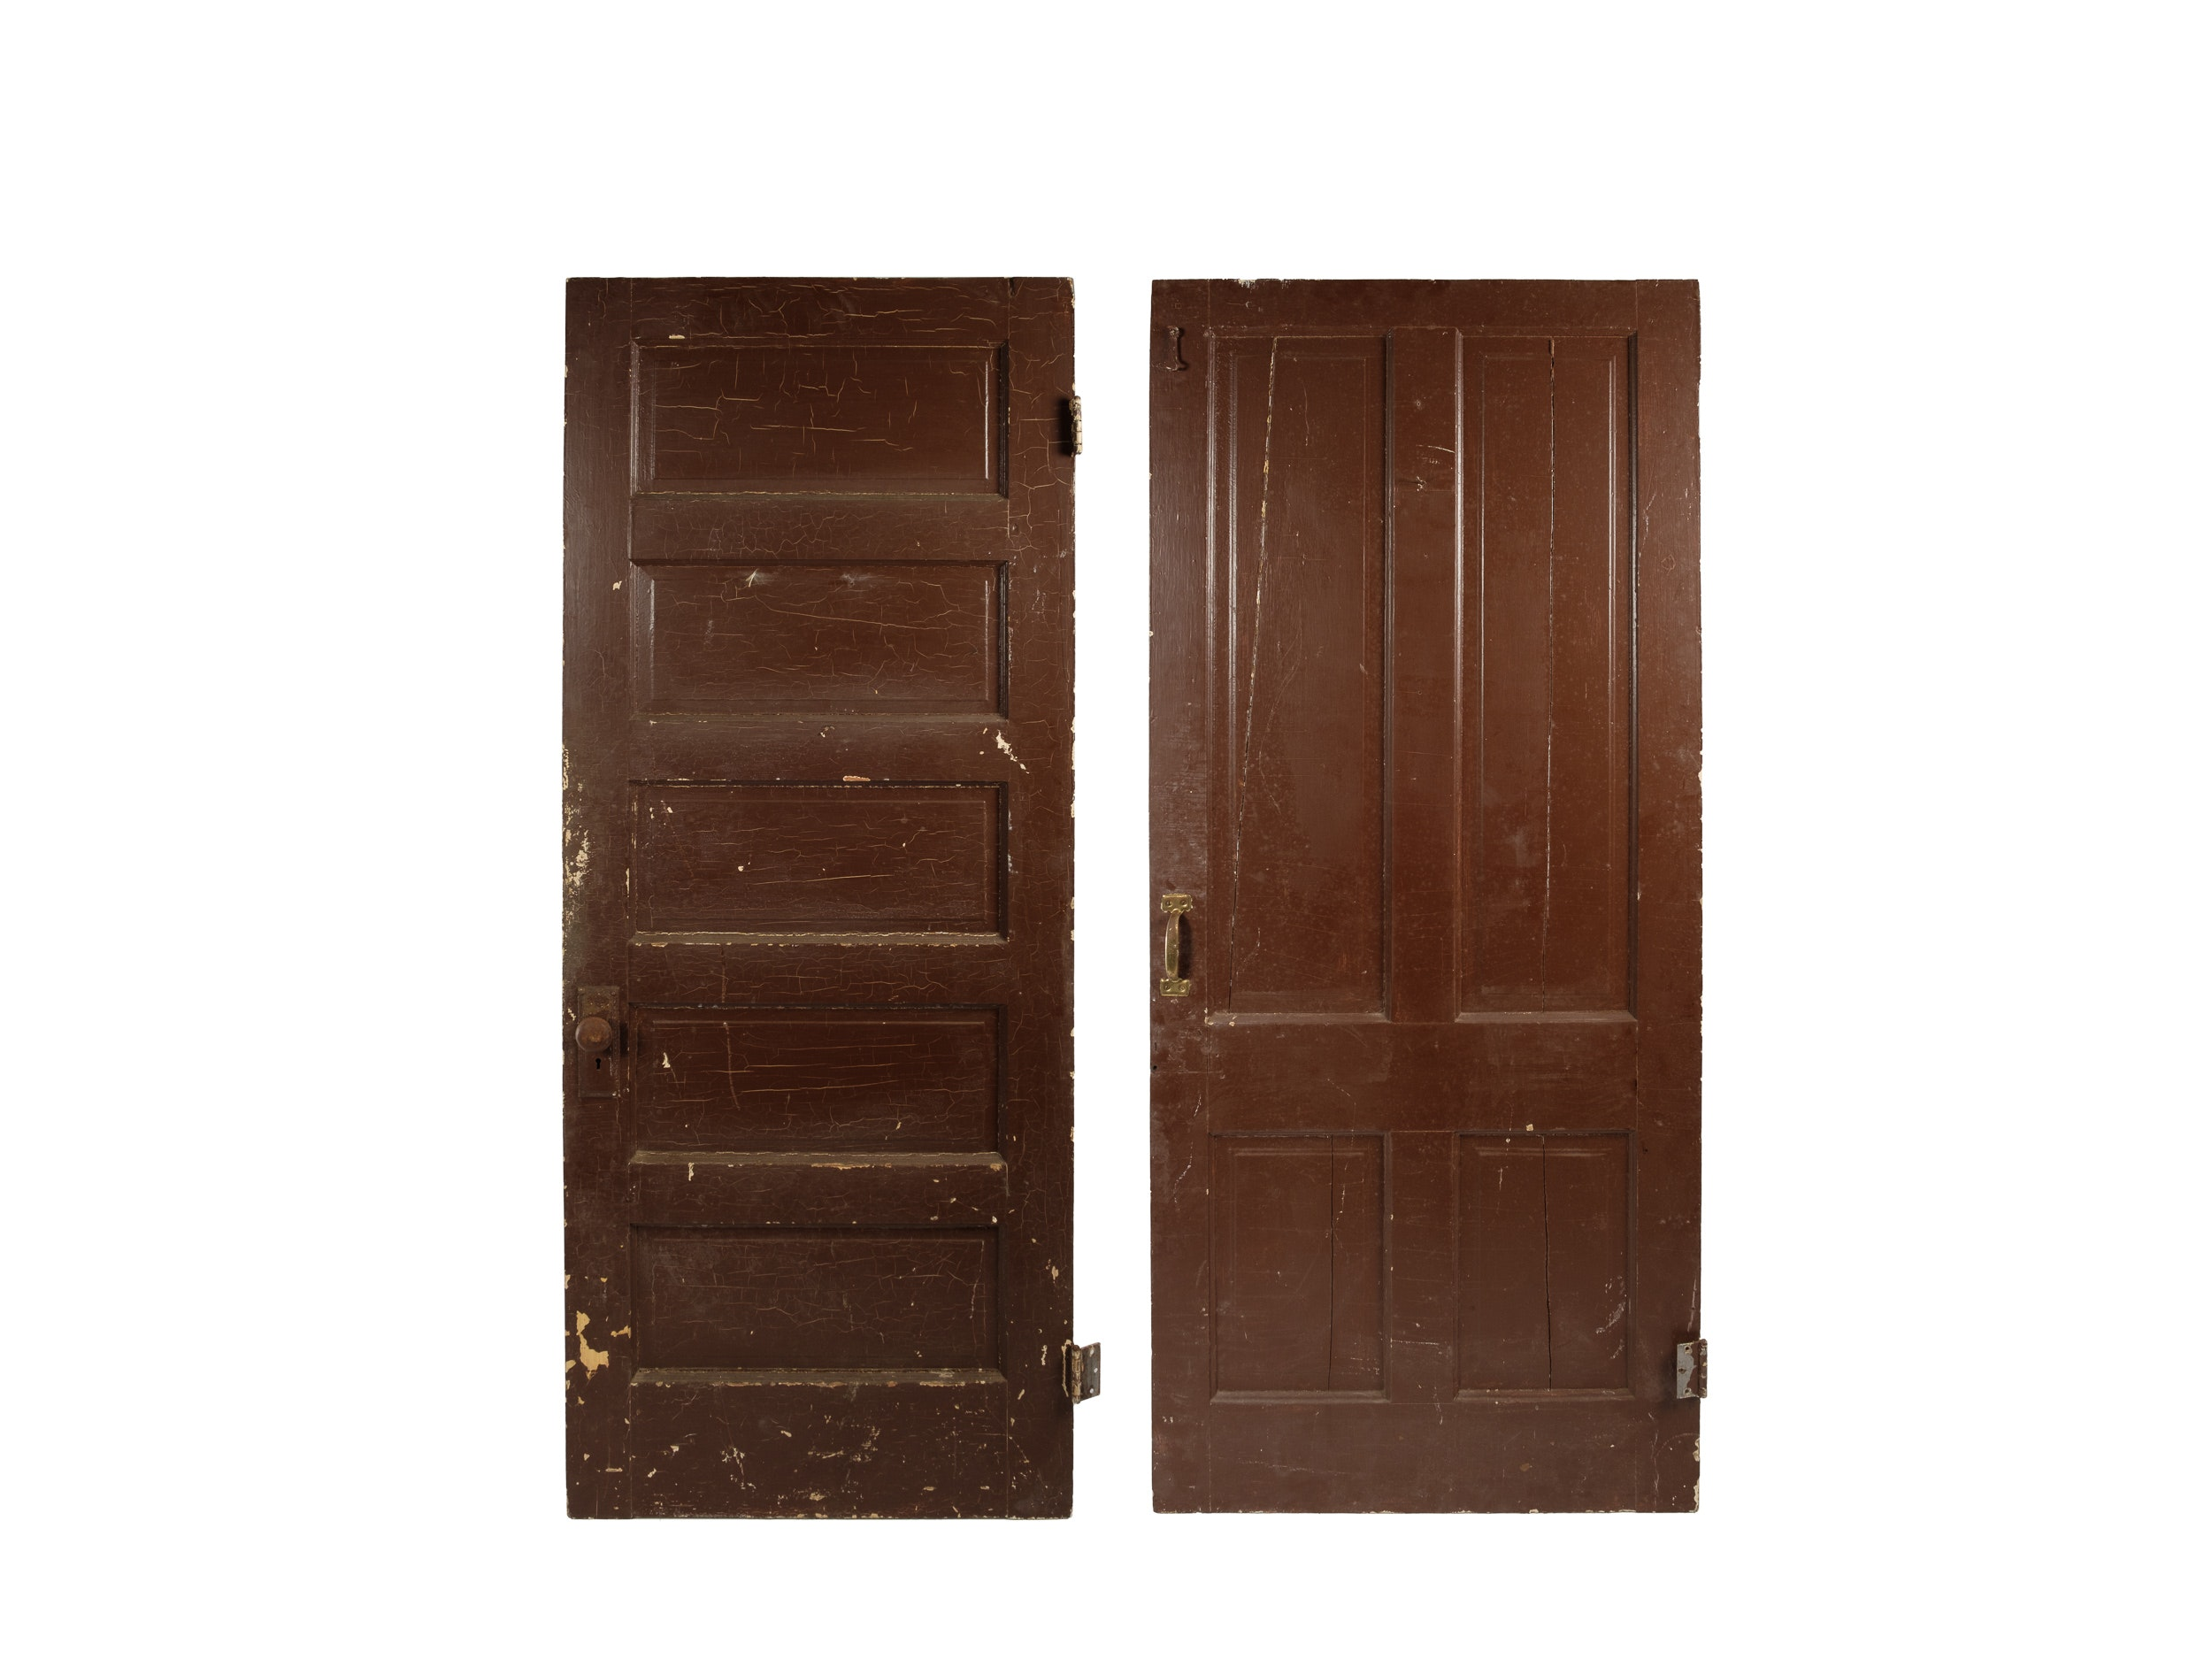 Vintage Wood Paneled Doors ...  sc 1 st  EBTH.com & Vintage Wood Paneled Doors : EBTH